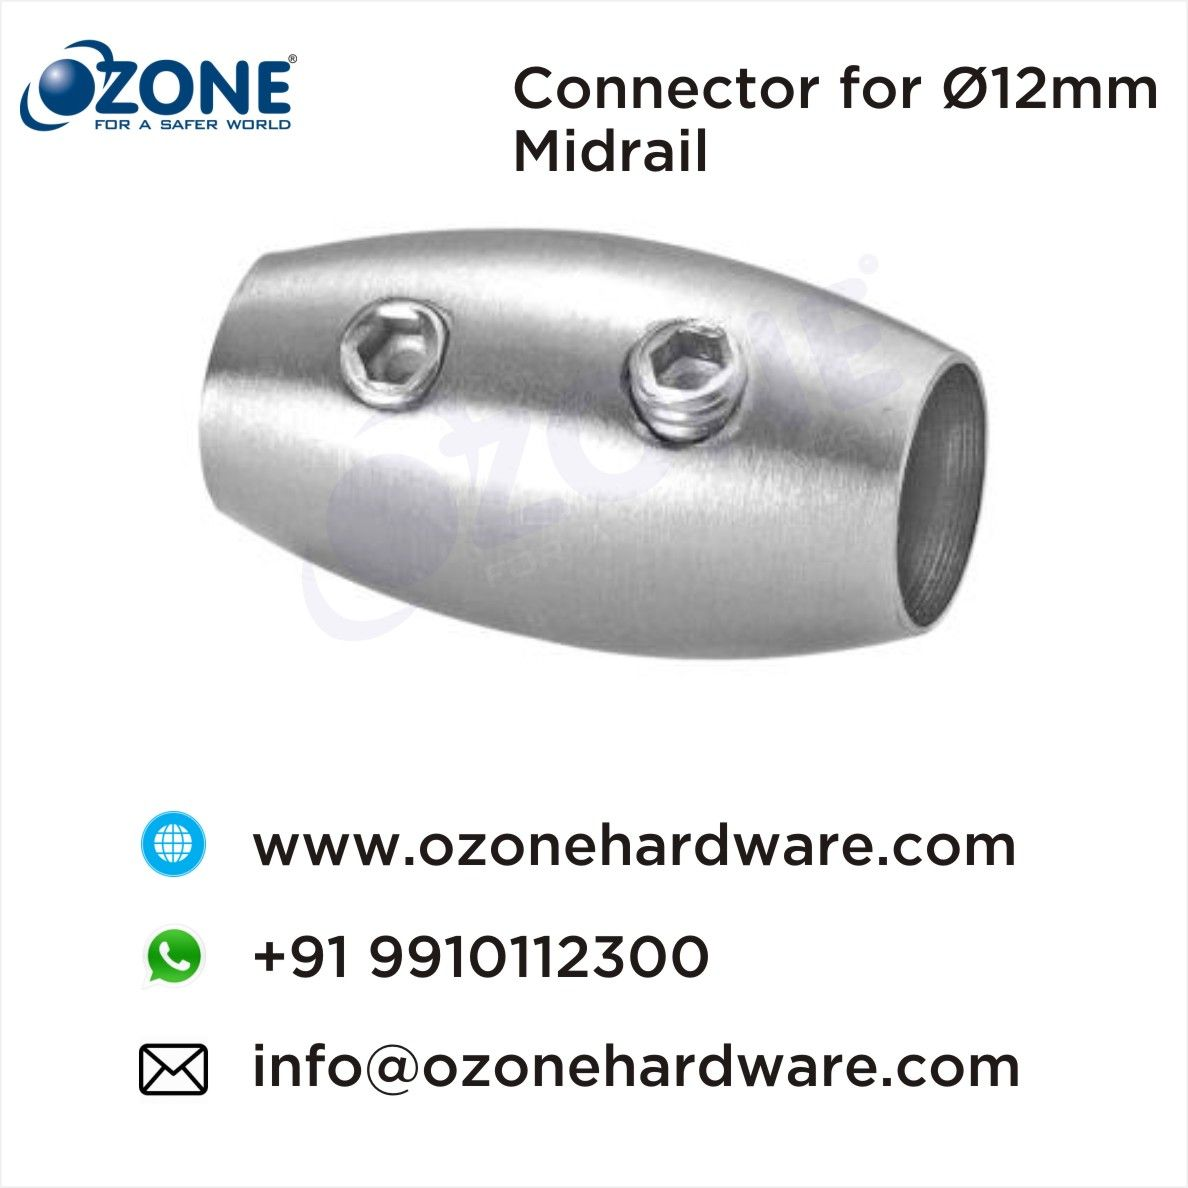 Connector For O12mm Midrail Elbows Connectors Railing Accessories Balustrade Hardware Accessories Railing Solution Railing Connector Stainless